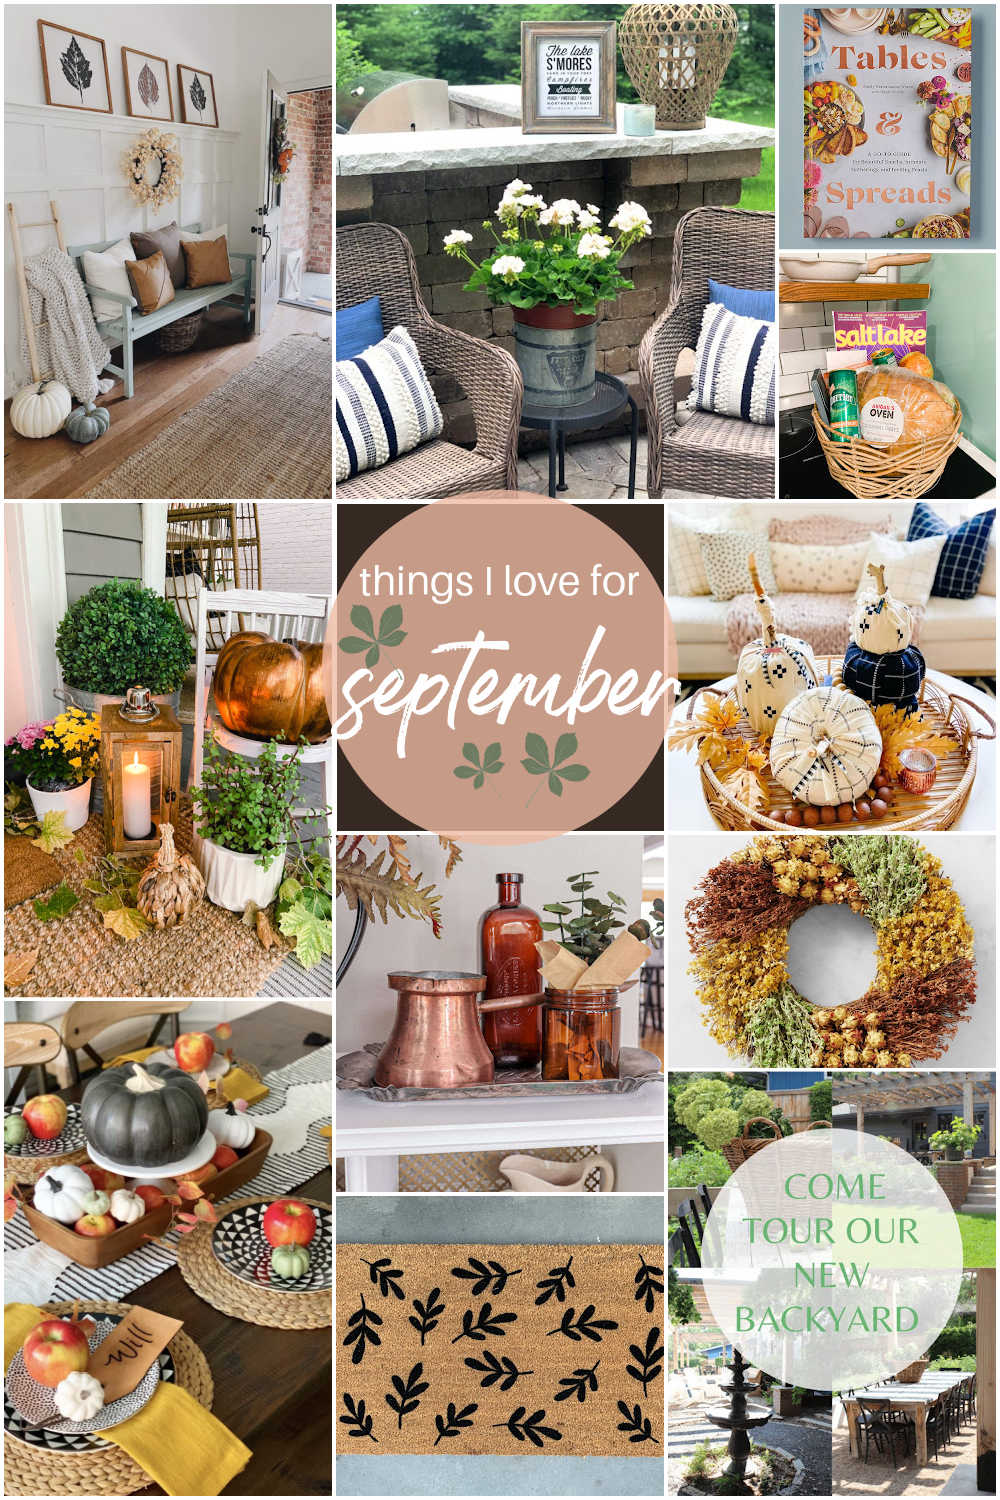 Welcome Home Saturday - Things I Love for September. Bathroom remodel is done, bedroom remodel update, airbnb ideas, fall decor and fall DIY ideas!